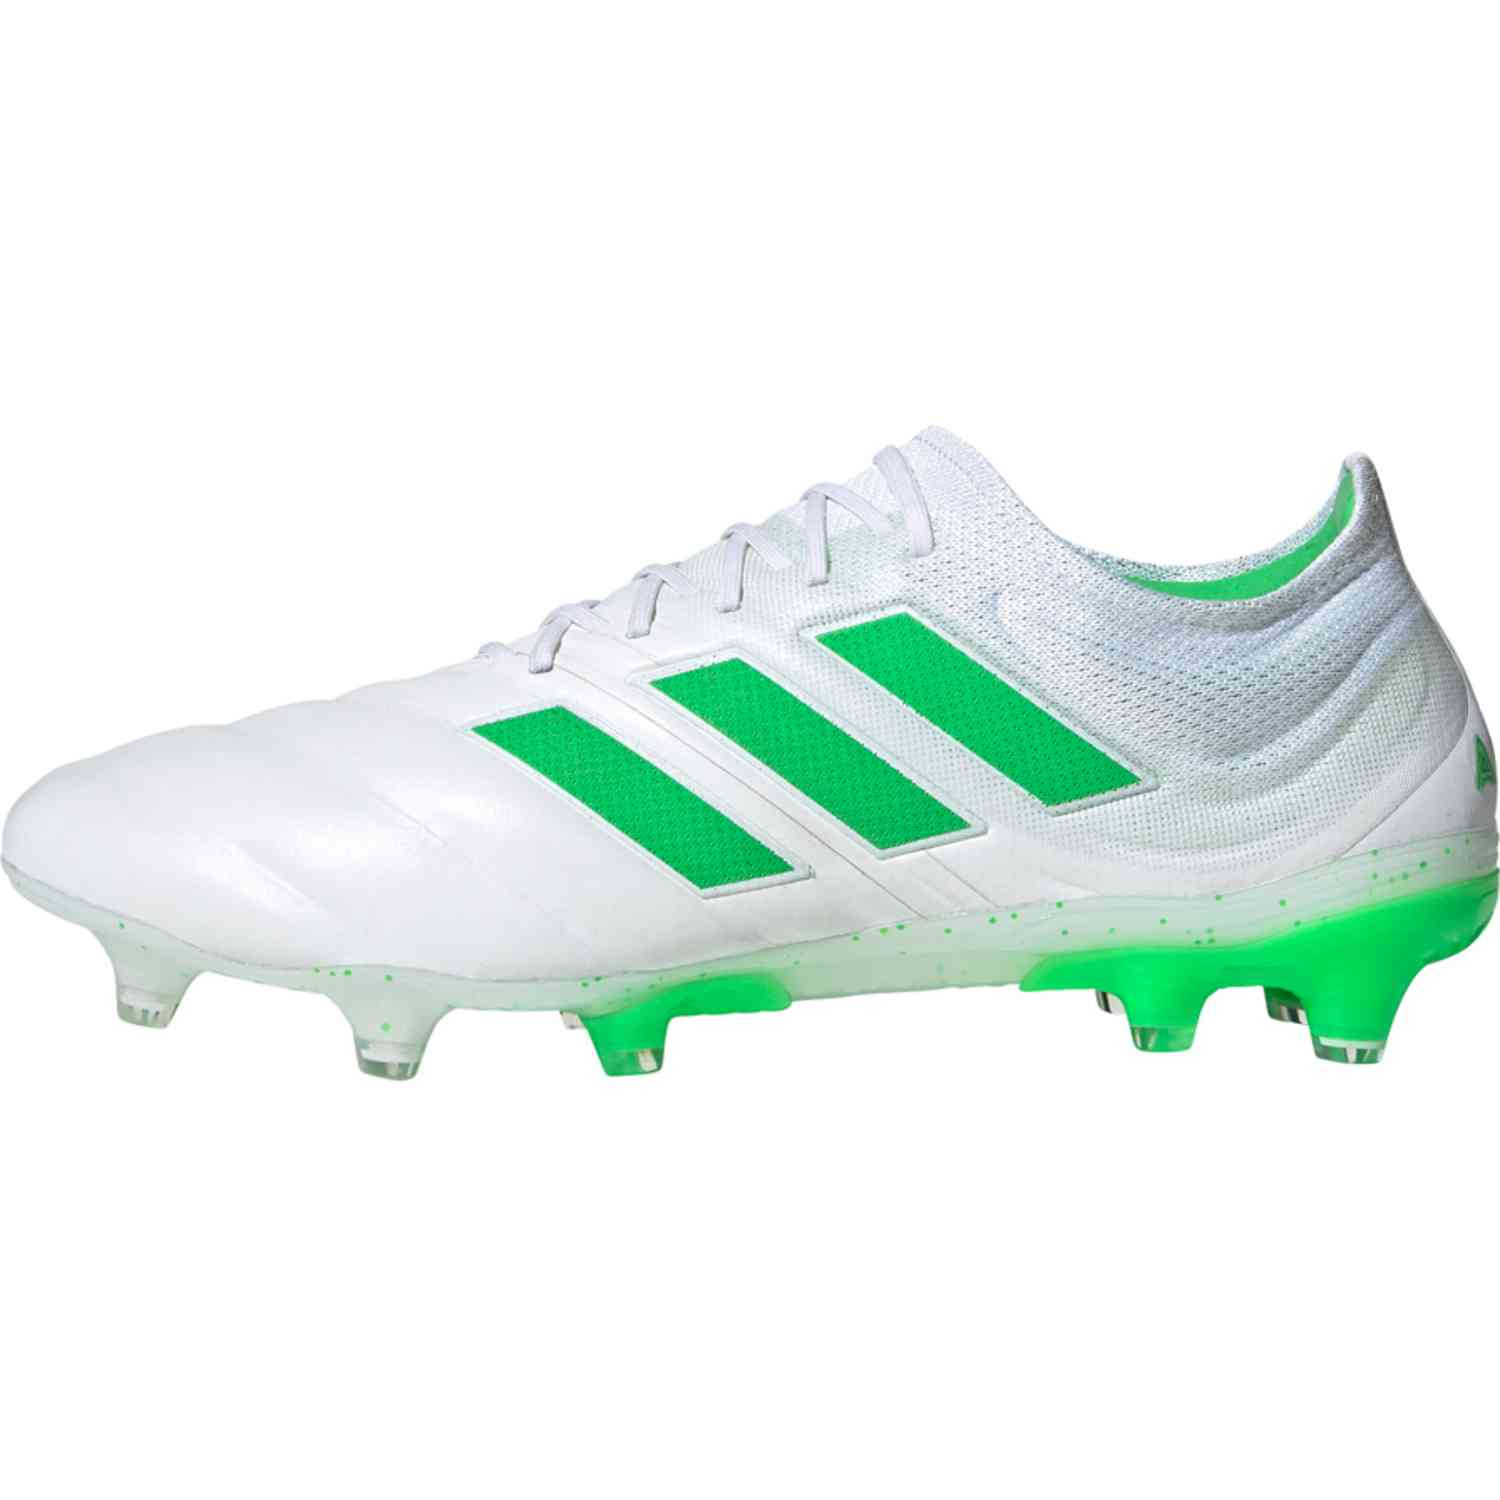 18615c3a7 adidas Copa 19.1 FG Soccer Cleat- White/Solar Lime | Soccer ...